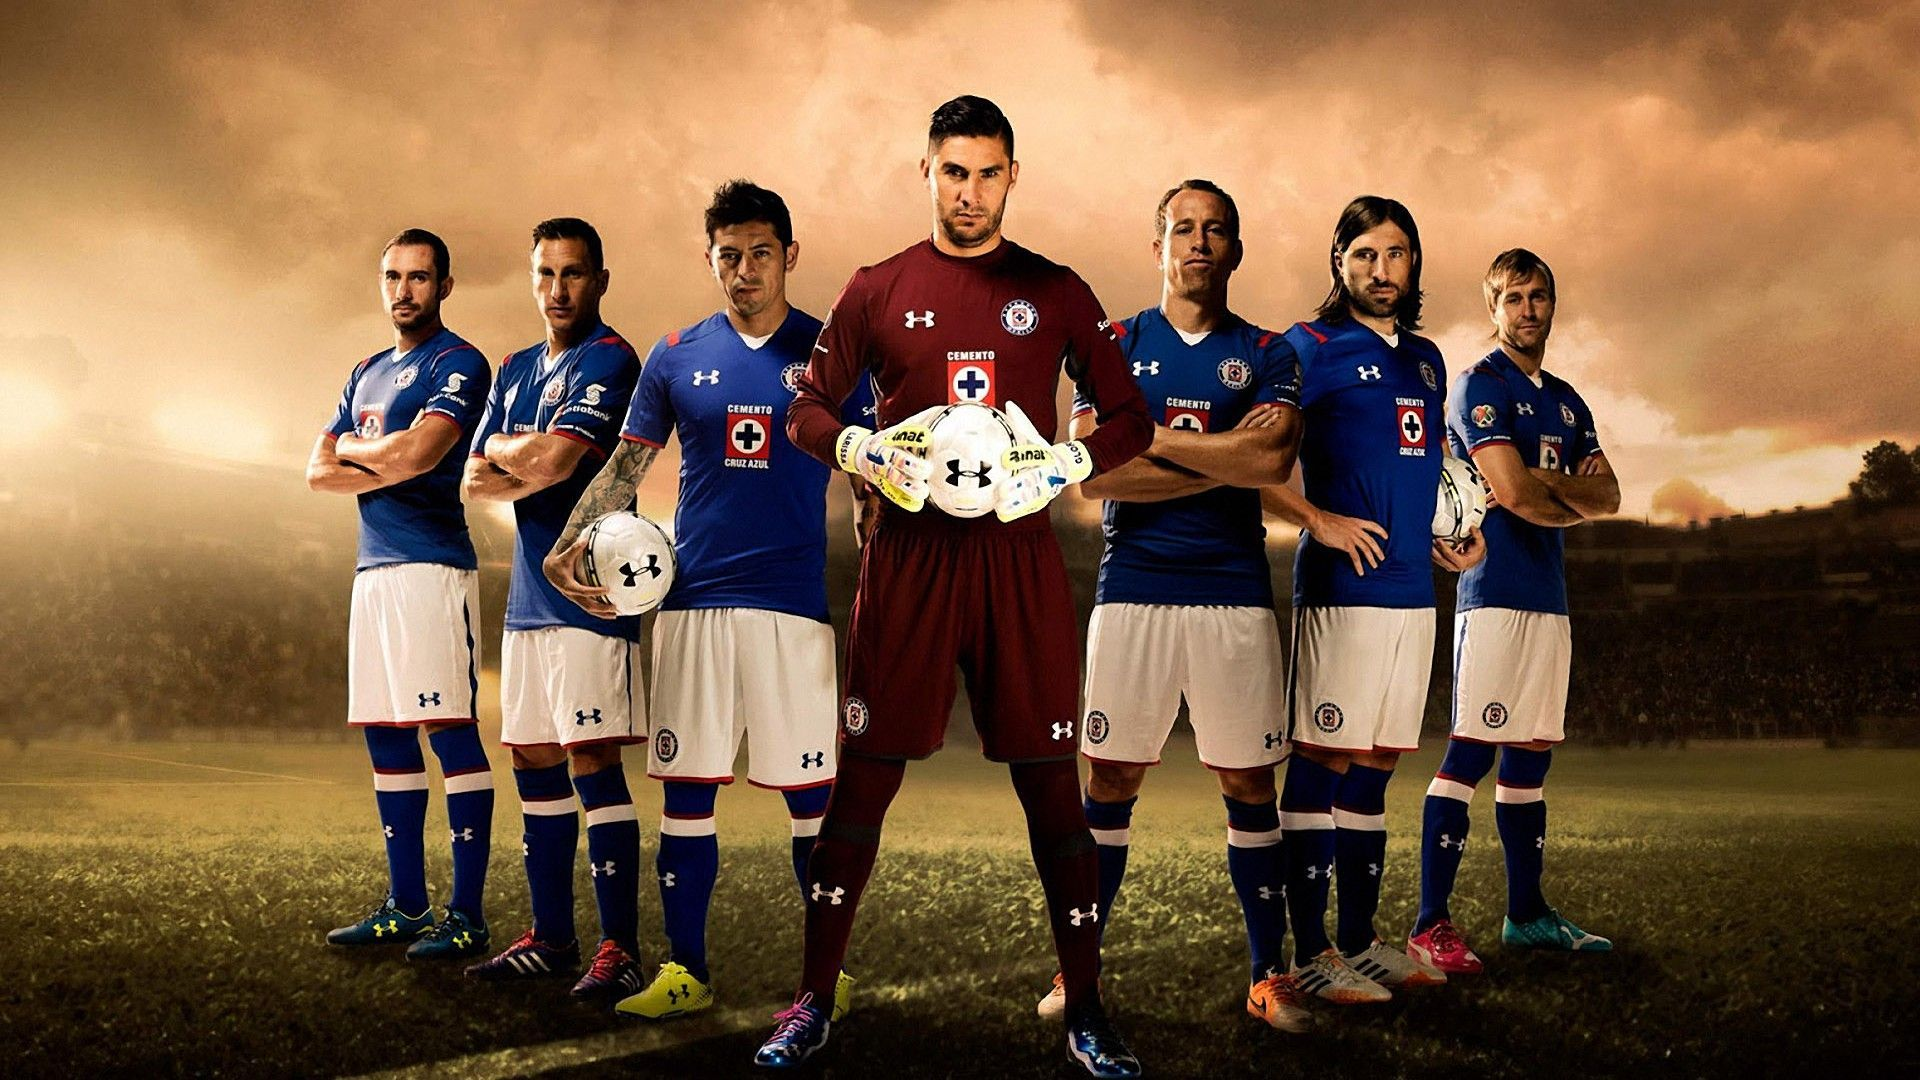 wallpaper.wiki-HD-Wallpapers-Cruz-Azul-Free-Download-PIC-WPB004186